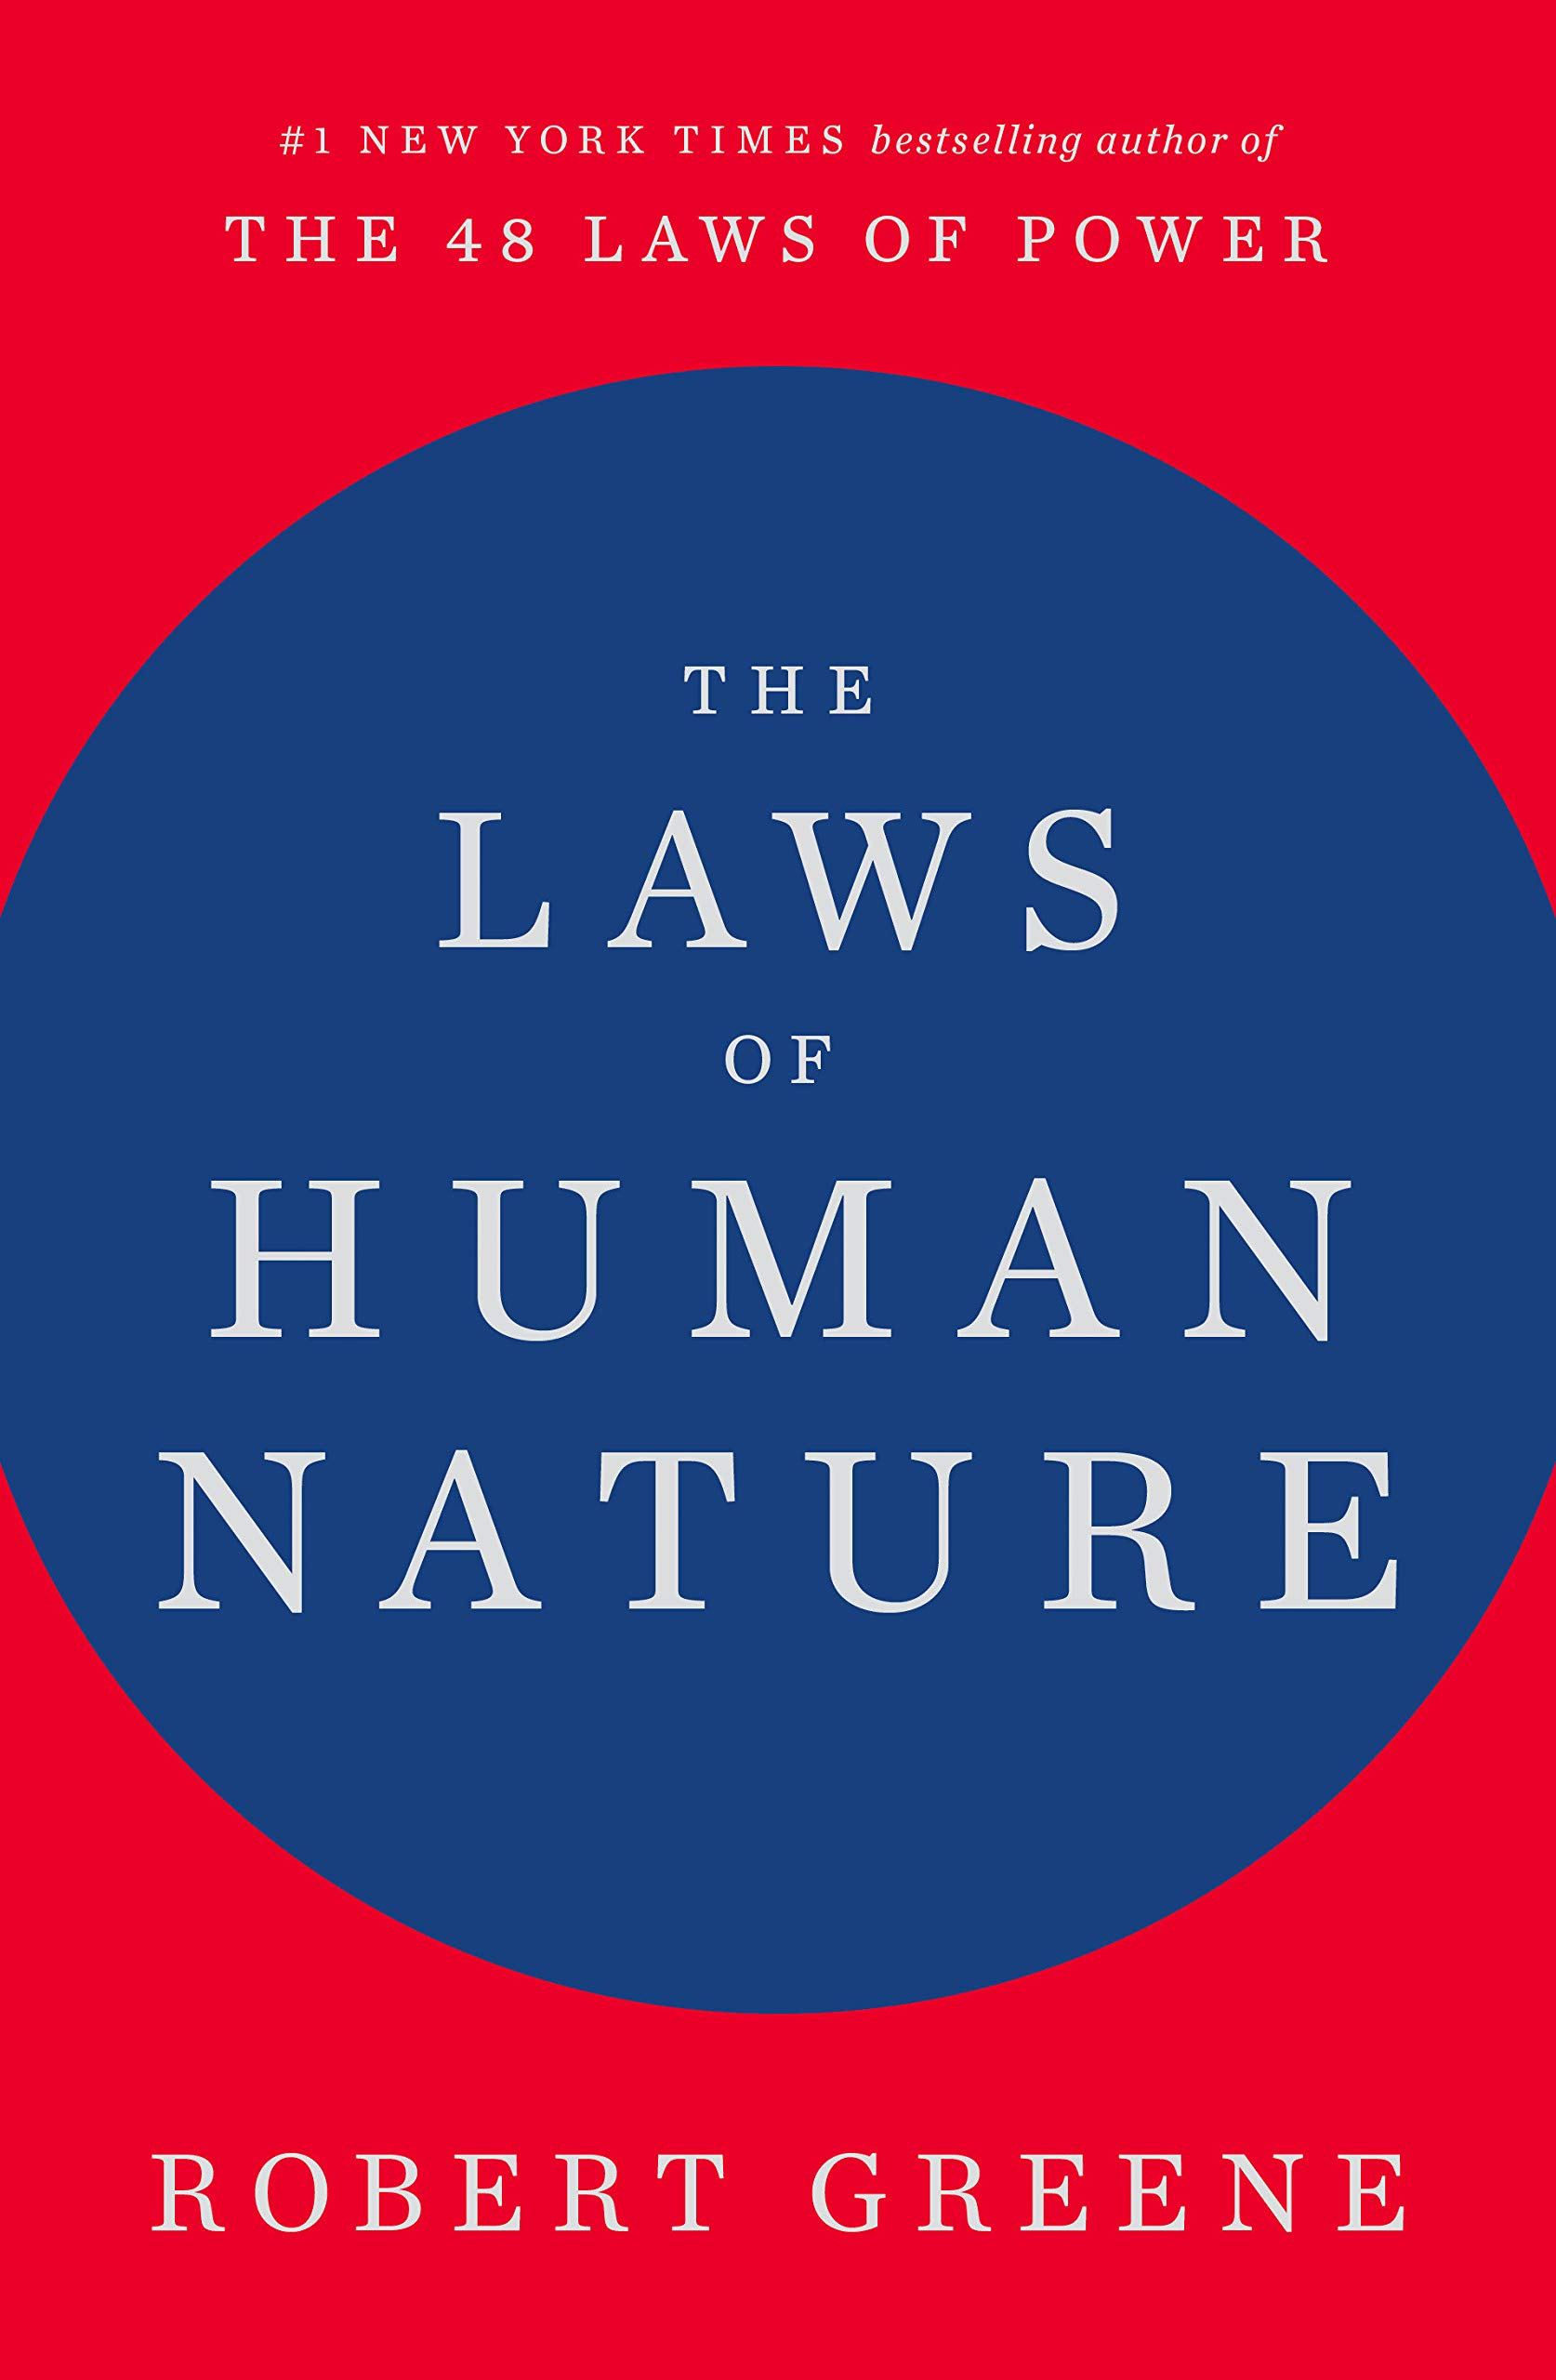 the laws of human nature.jpg